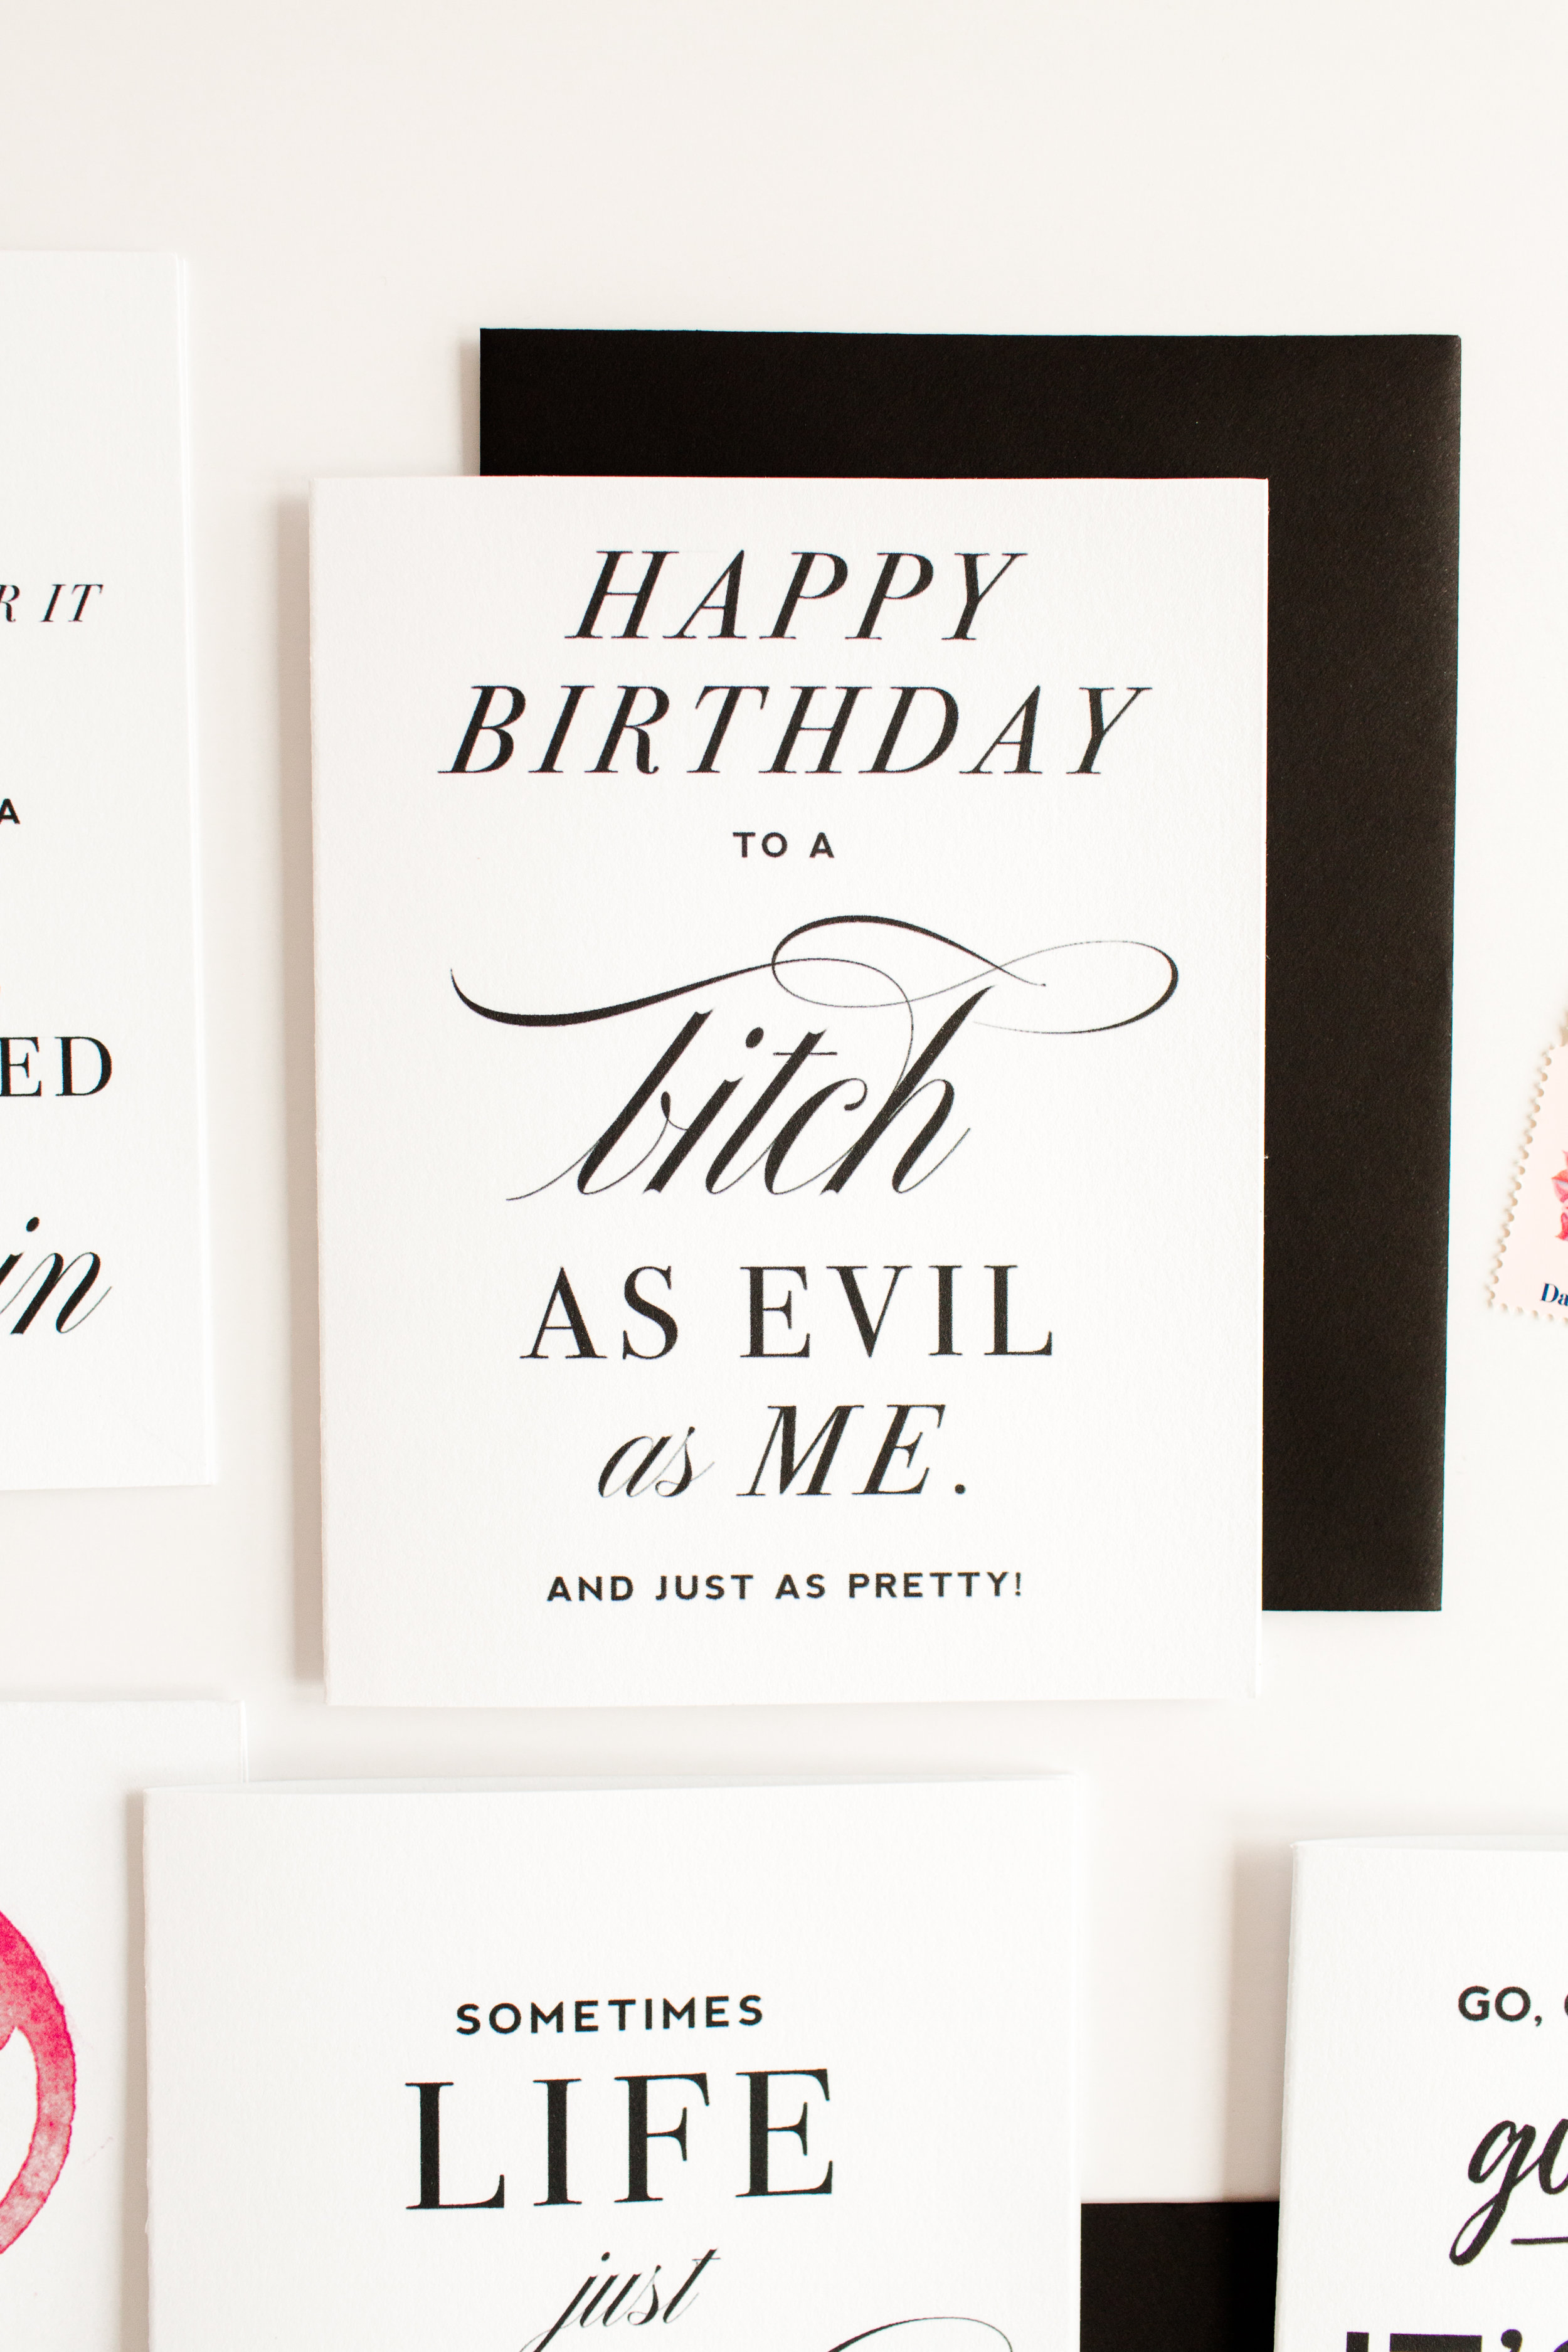 kitty-meow-boutique-stationery-bethanne-arthur-photography-photos-230.jpg